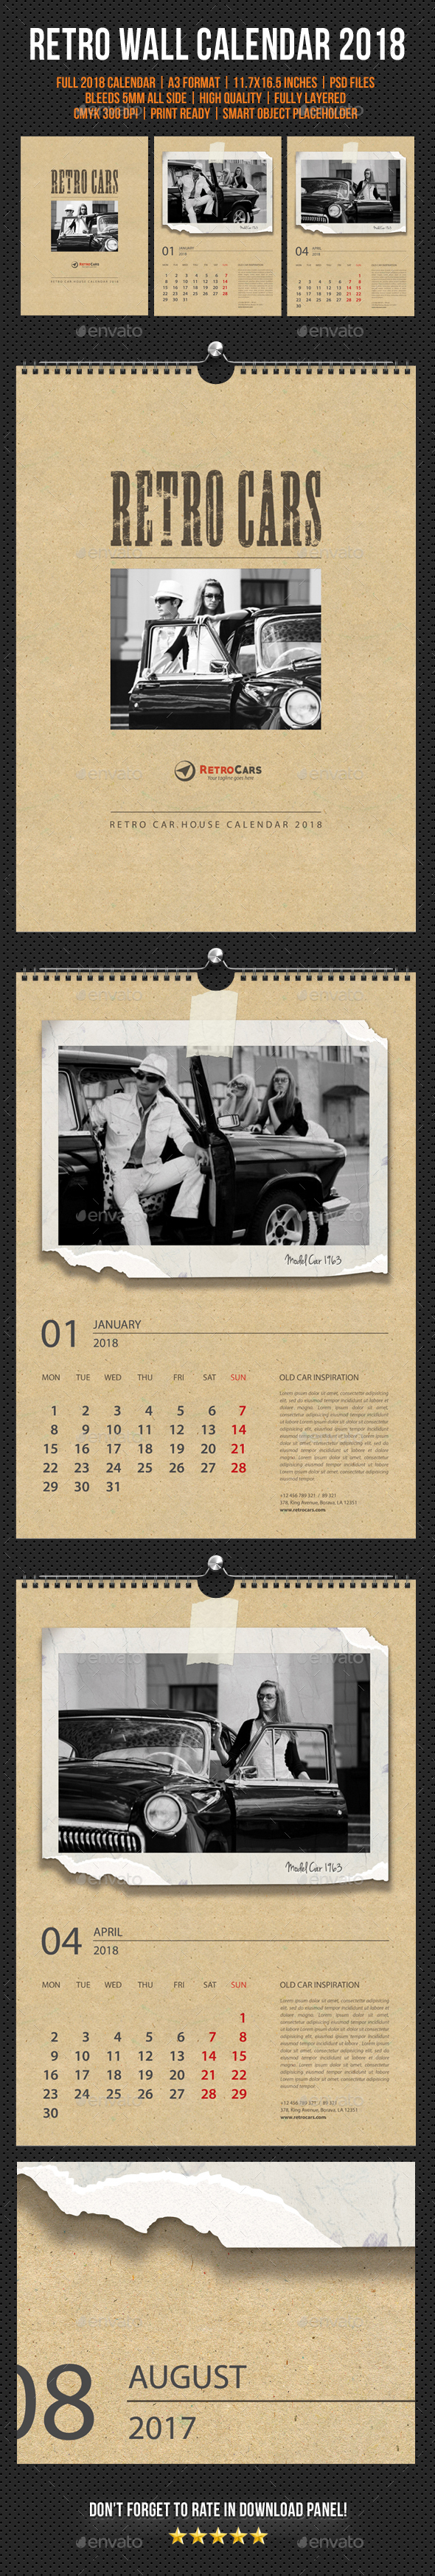 Wall Calendar 2018 Retro Photo - Calendars Stationery